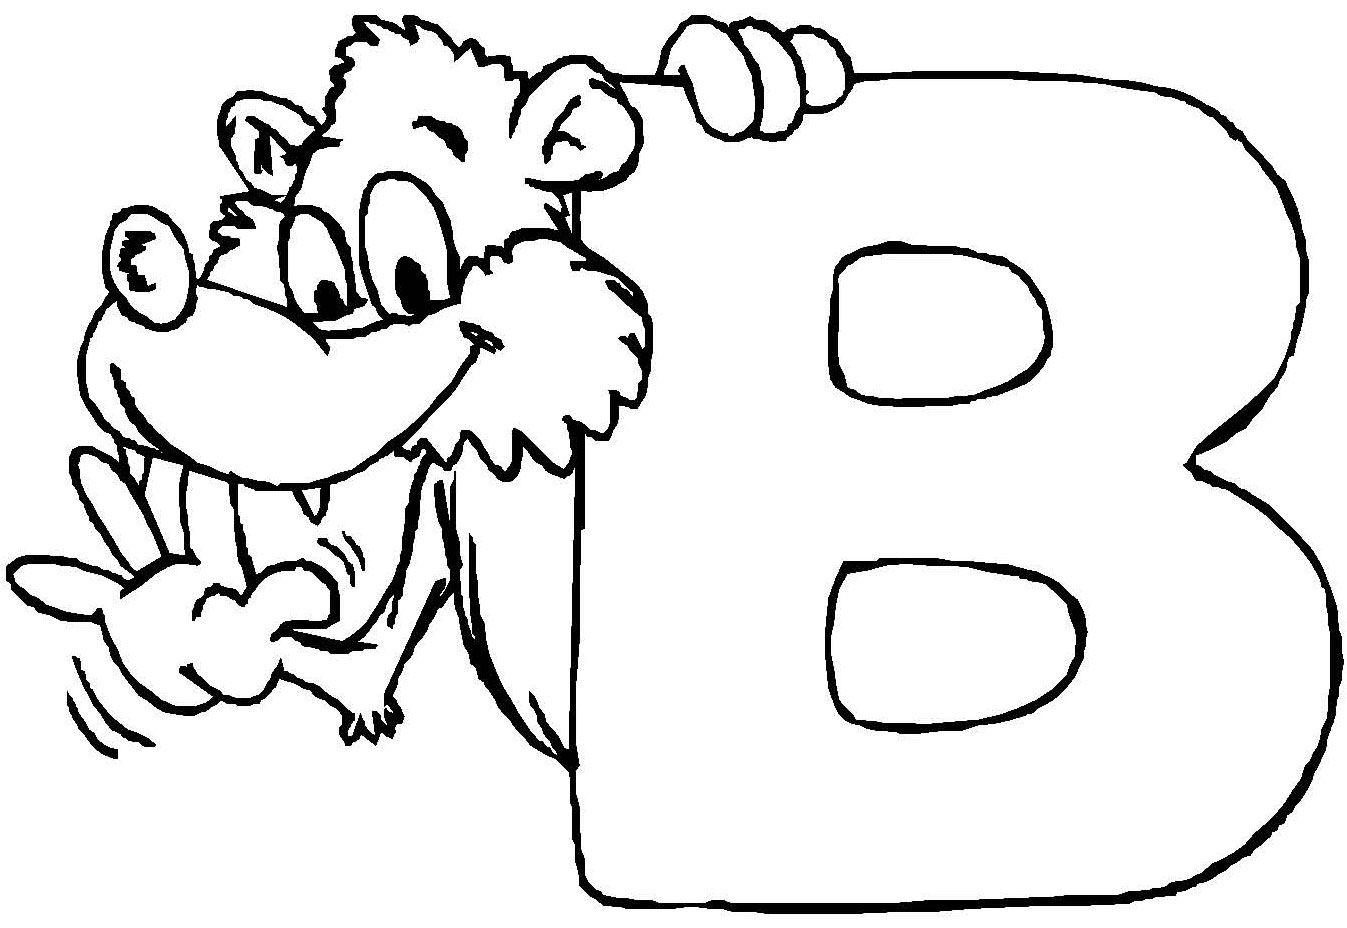 free-letter-b-printable-colouring-pages-for-preschool